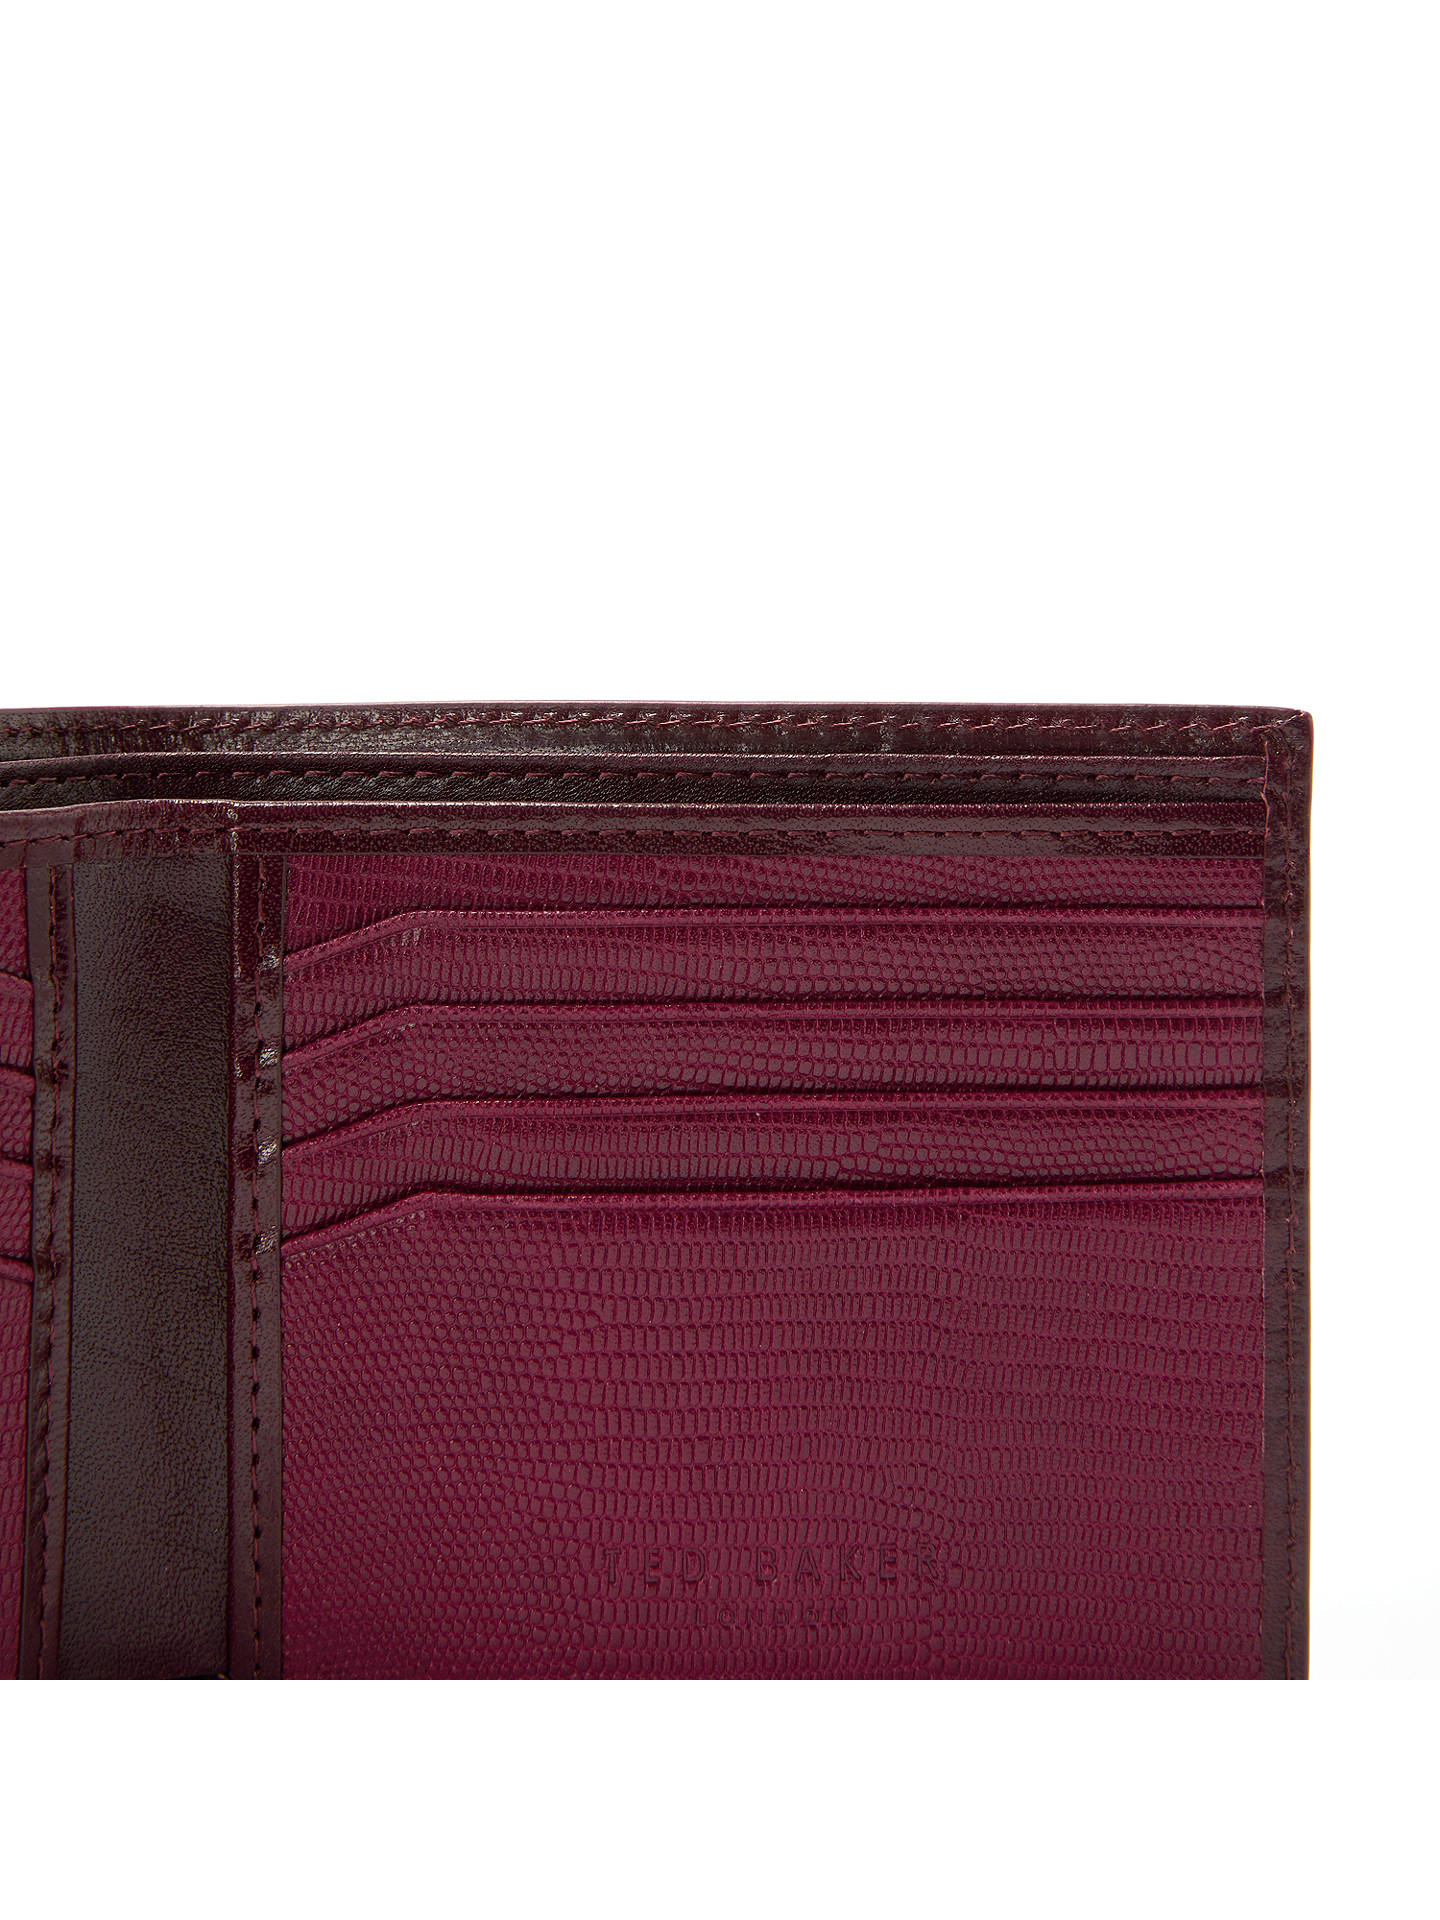 BuyTed Baker Spidey Contrast Bifold Wallet, Red Online at johnlewis.com